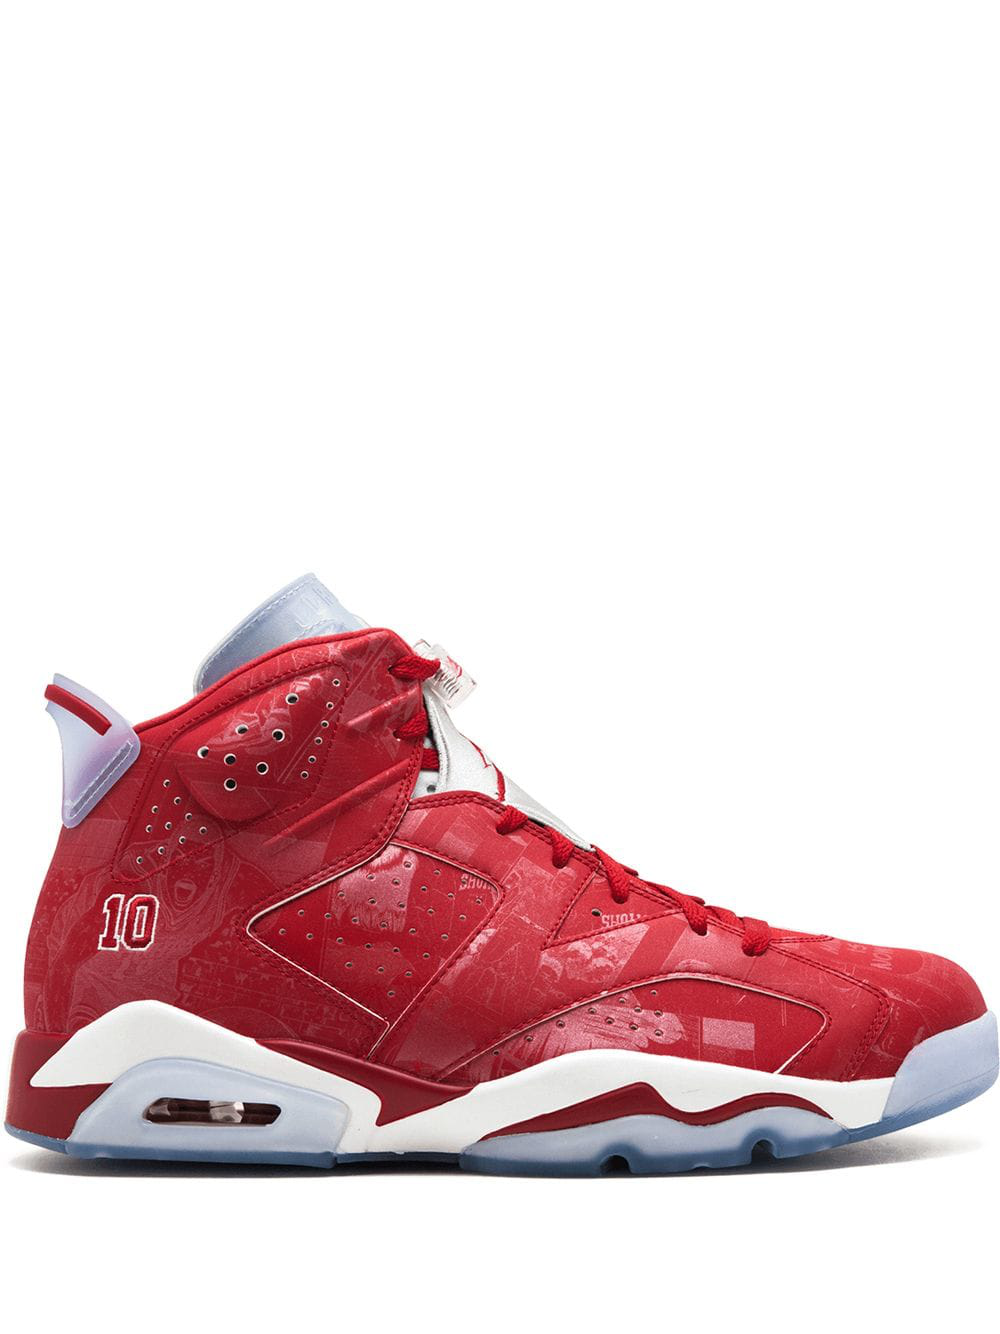 more photos f5992 3e01f Jordan Air 6 Retro X Slam Dunk Sneakers - Red